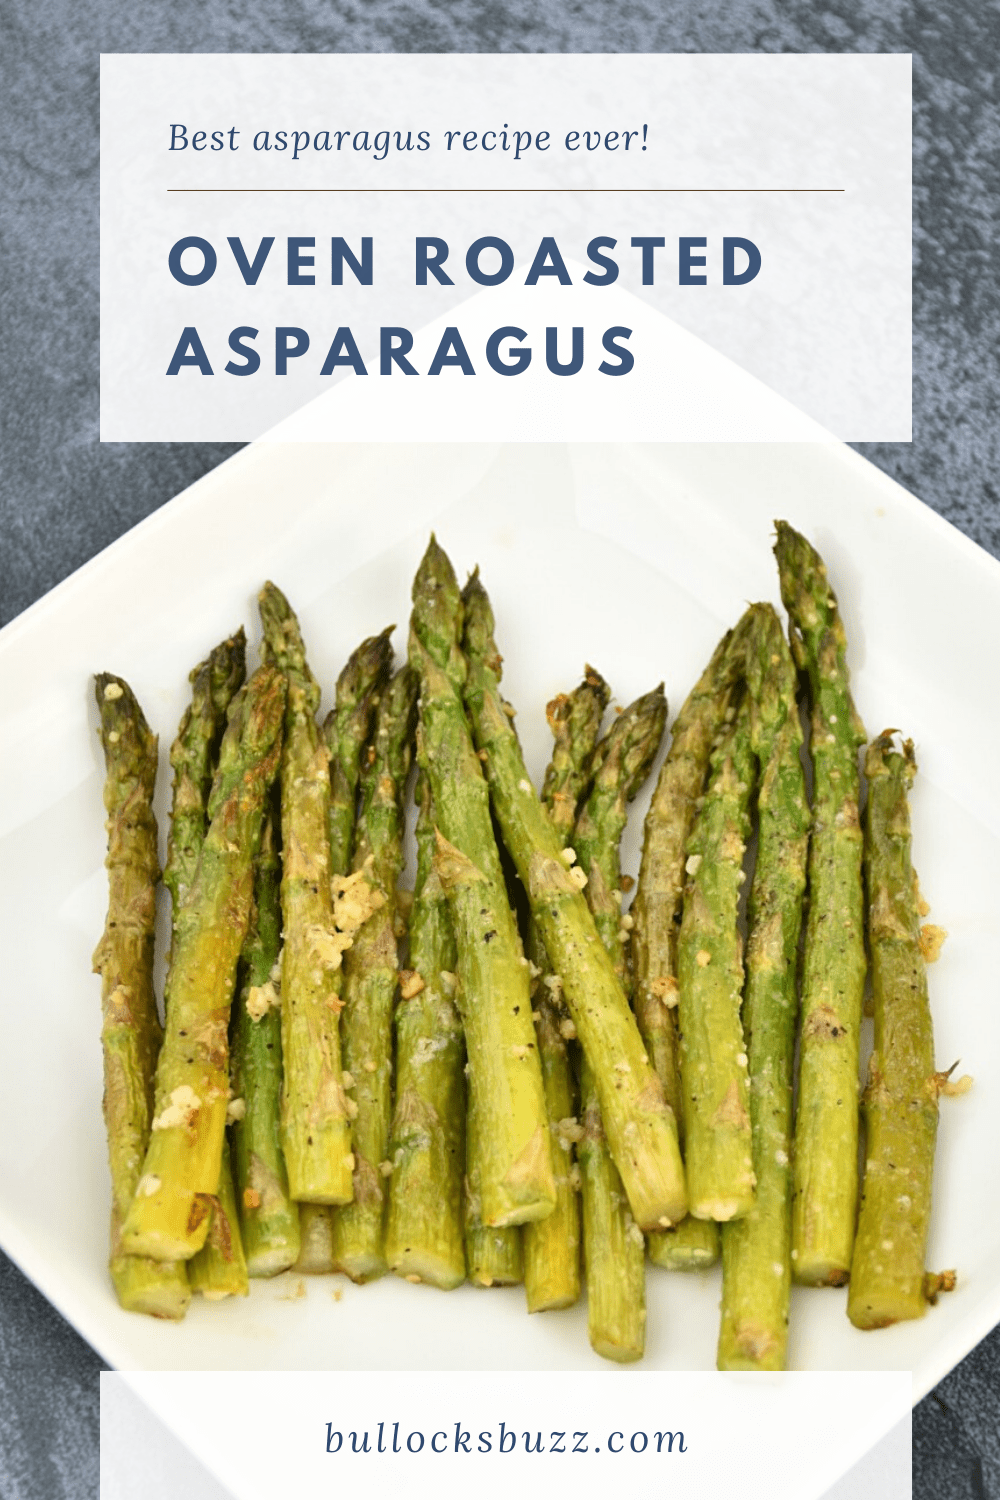 Tender spears of asparagus are tossed in olive oil and seasoned with garlic, salt, pepper, Parmesan cheese, and fresh lemon juice then roasted to perfection in this quick and easy Oven Roasted Asparagus recipe.